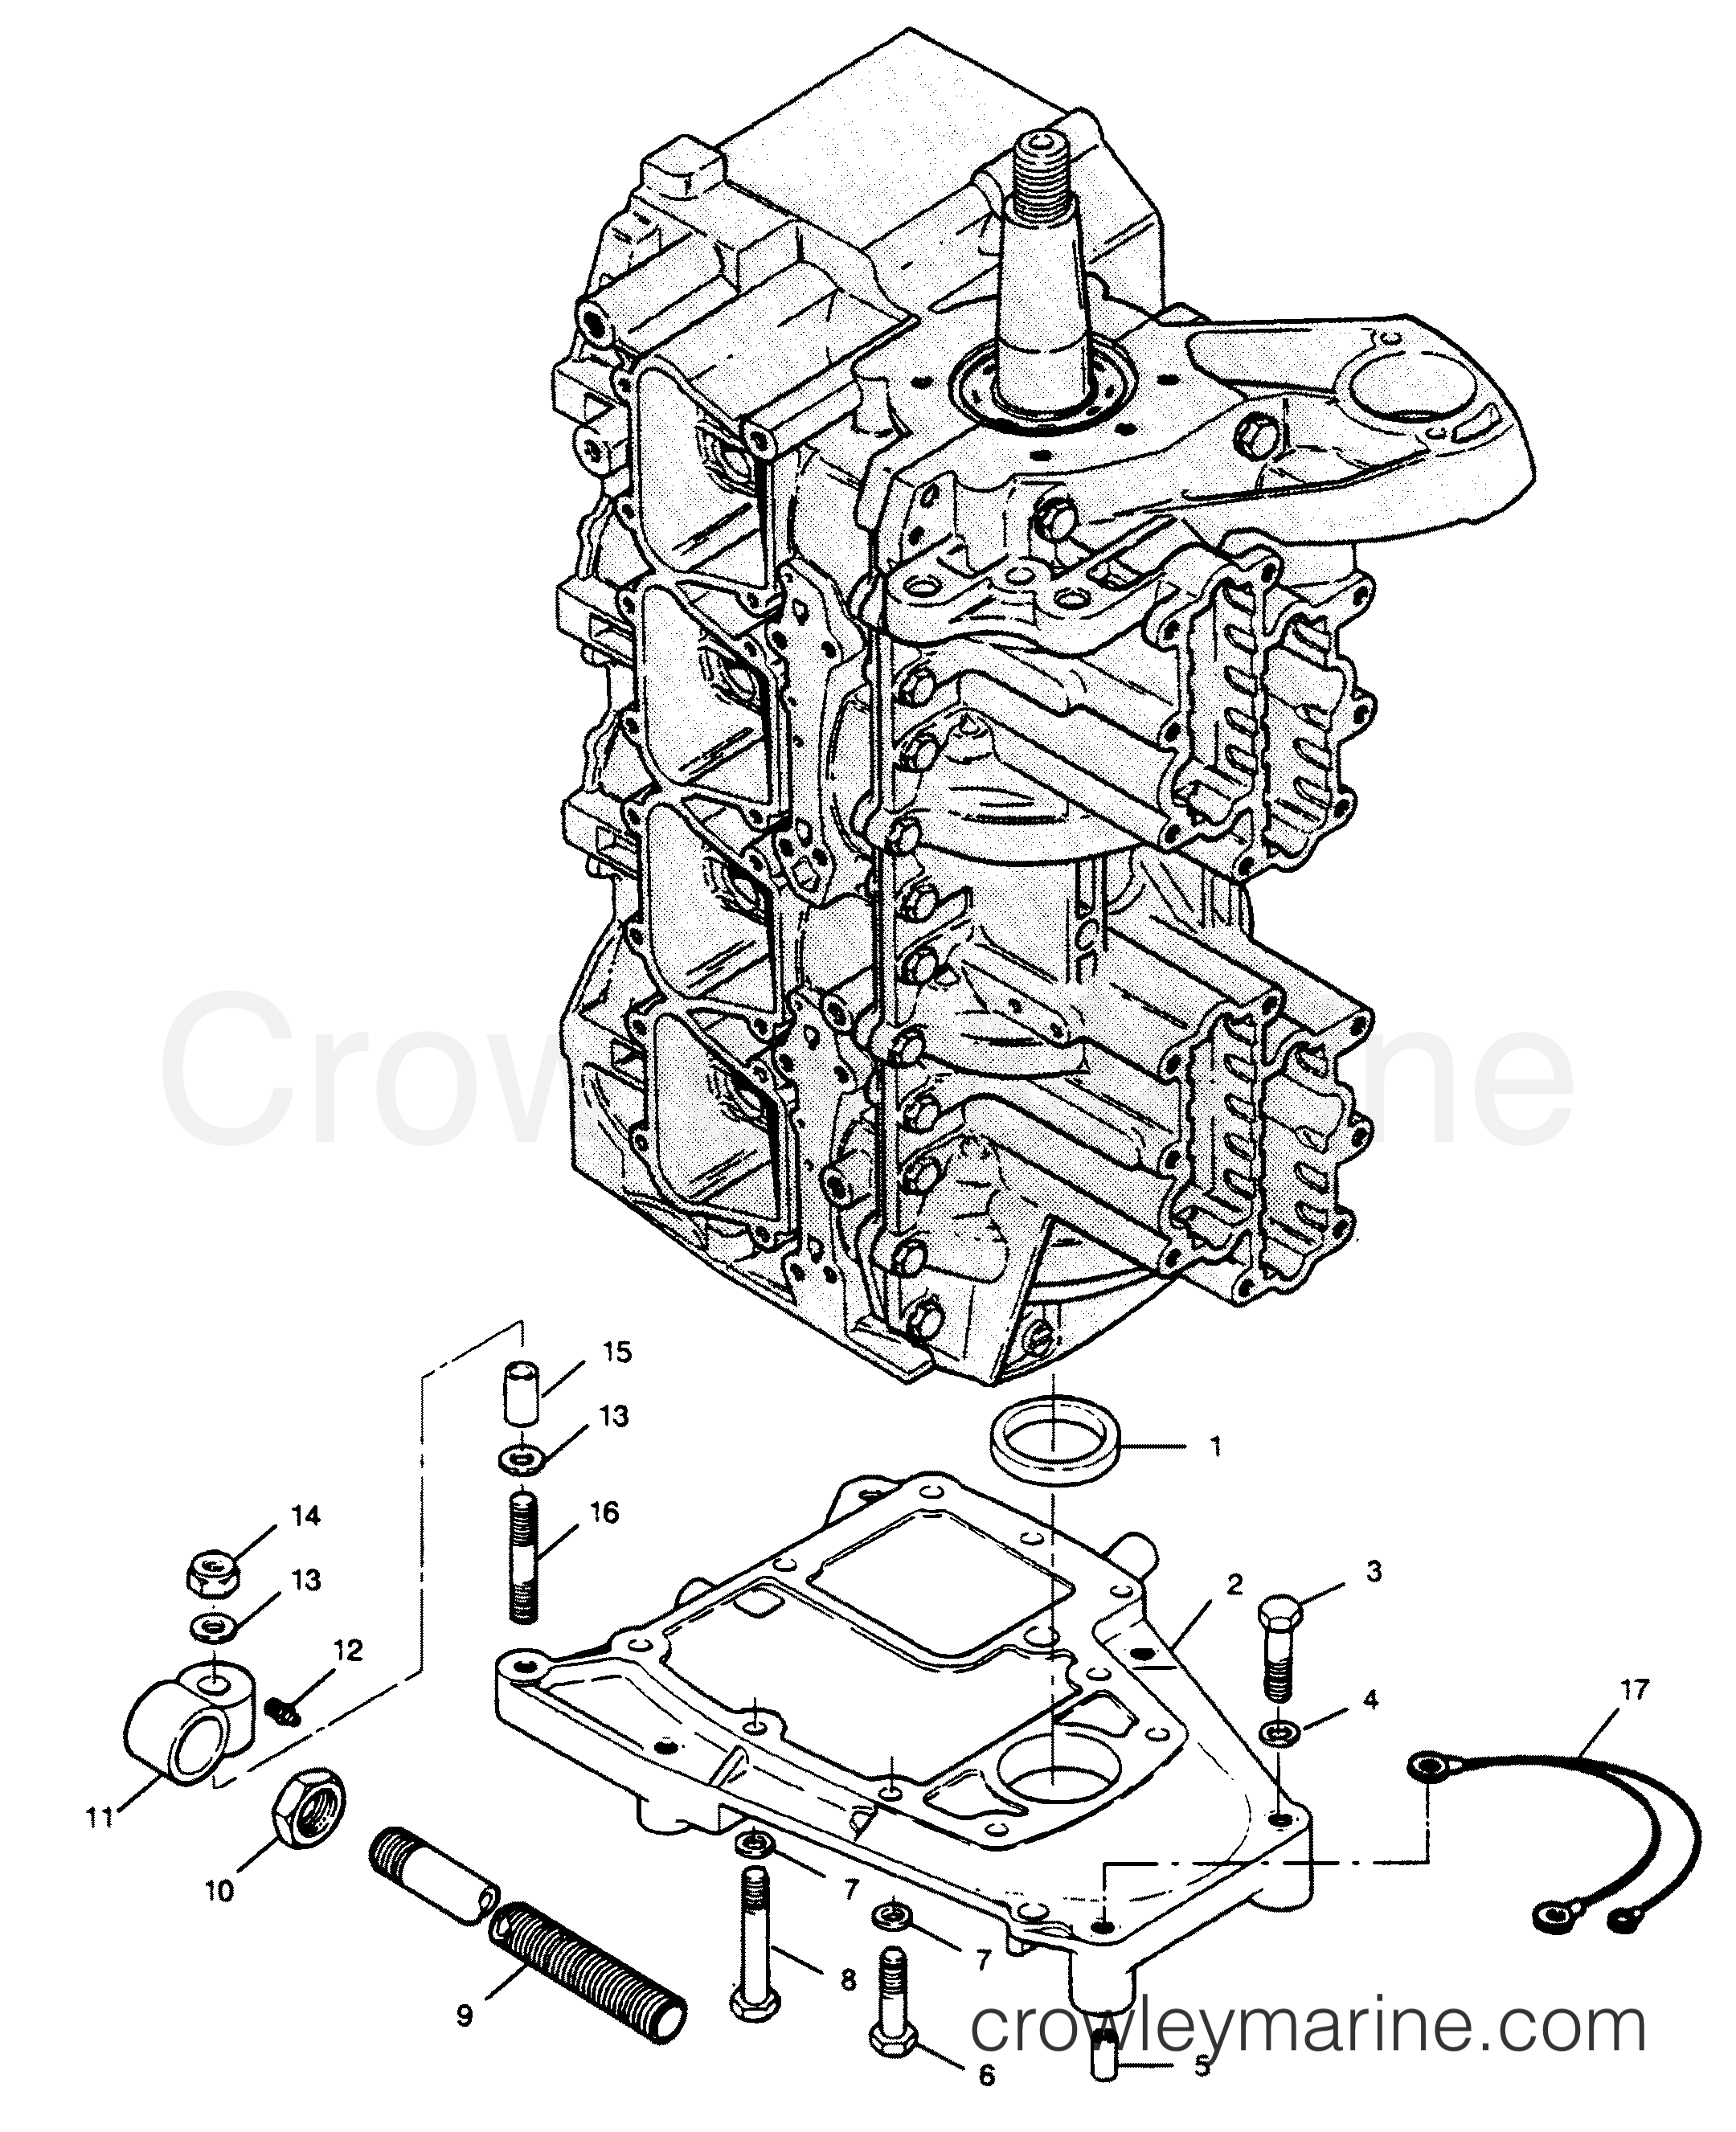 Spacer Plate And Steering Tube